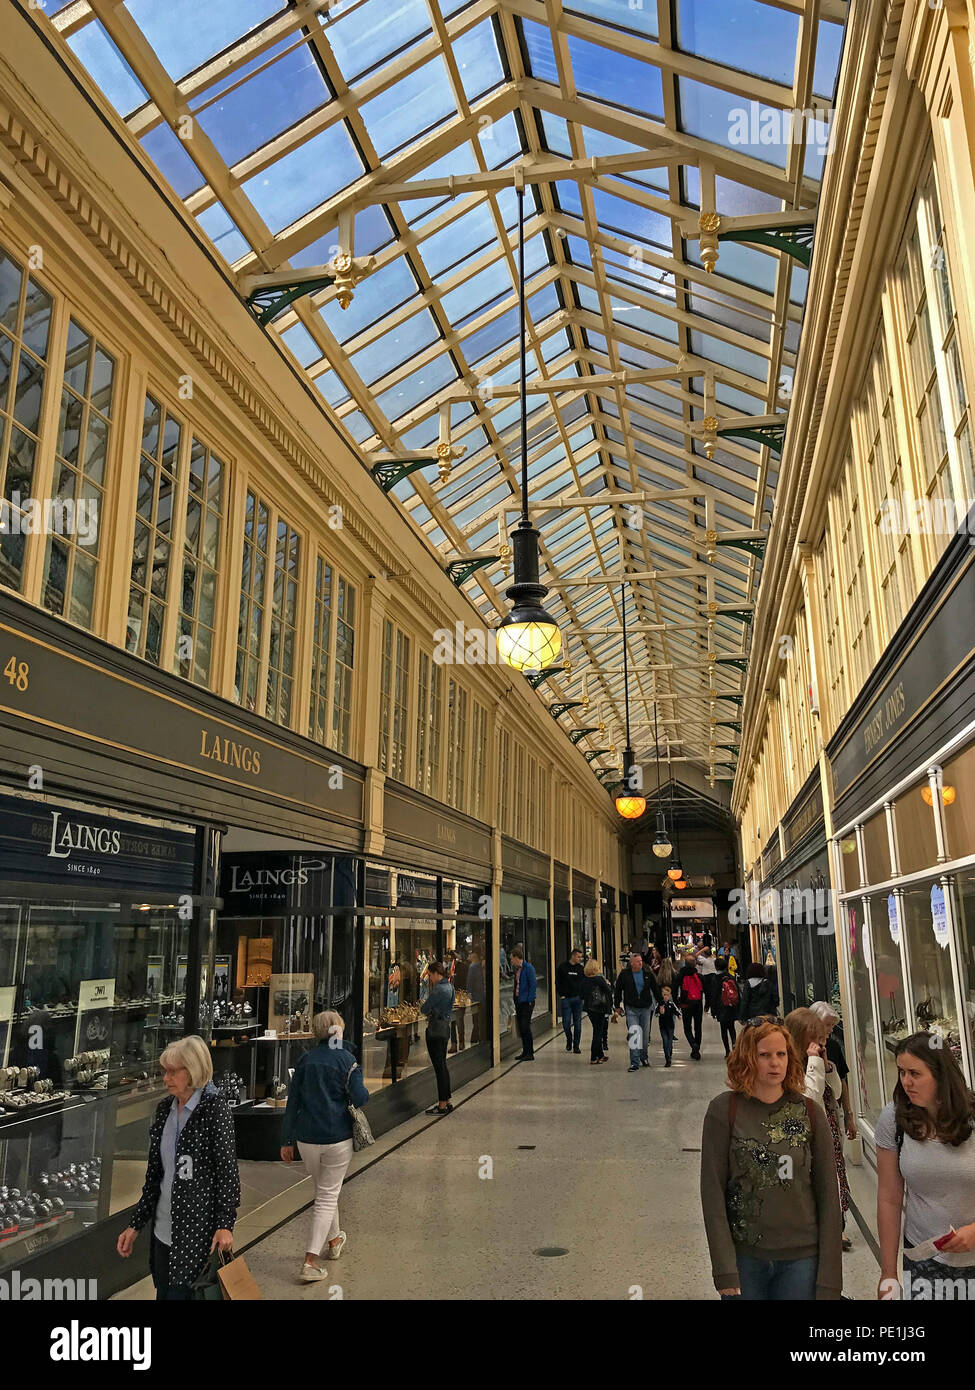 GoTonySmith @HotpixUK,GoTonySmith,@HotpixUK,Strathcylde,UK,Arcade,city centre,GB,shopping,retail,Victorian,shop,retailing,roof,canopy,light,lighting